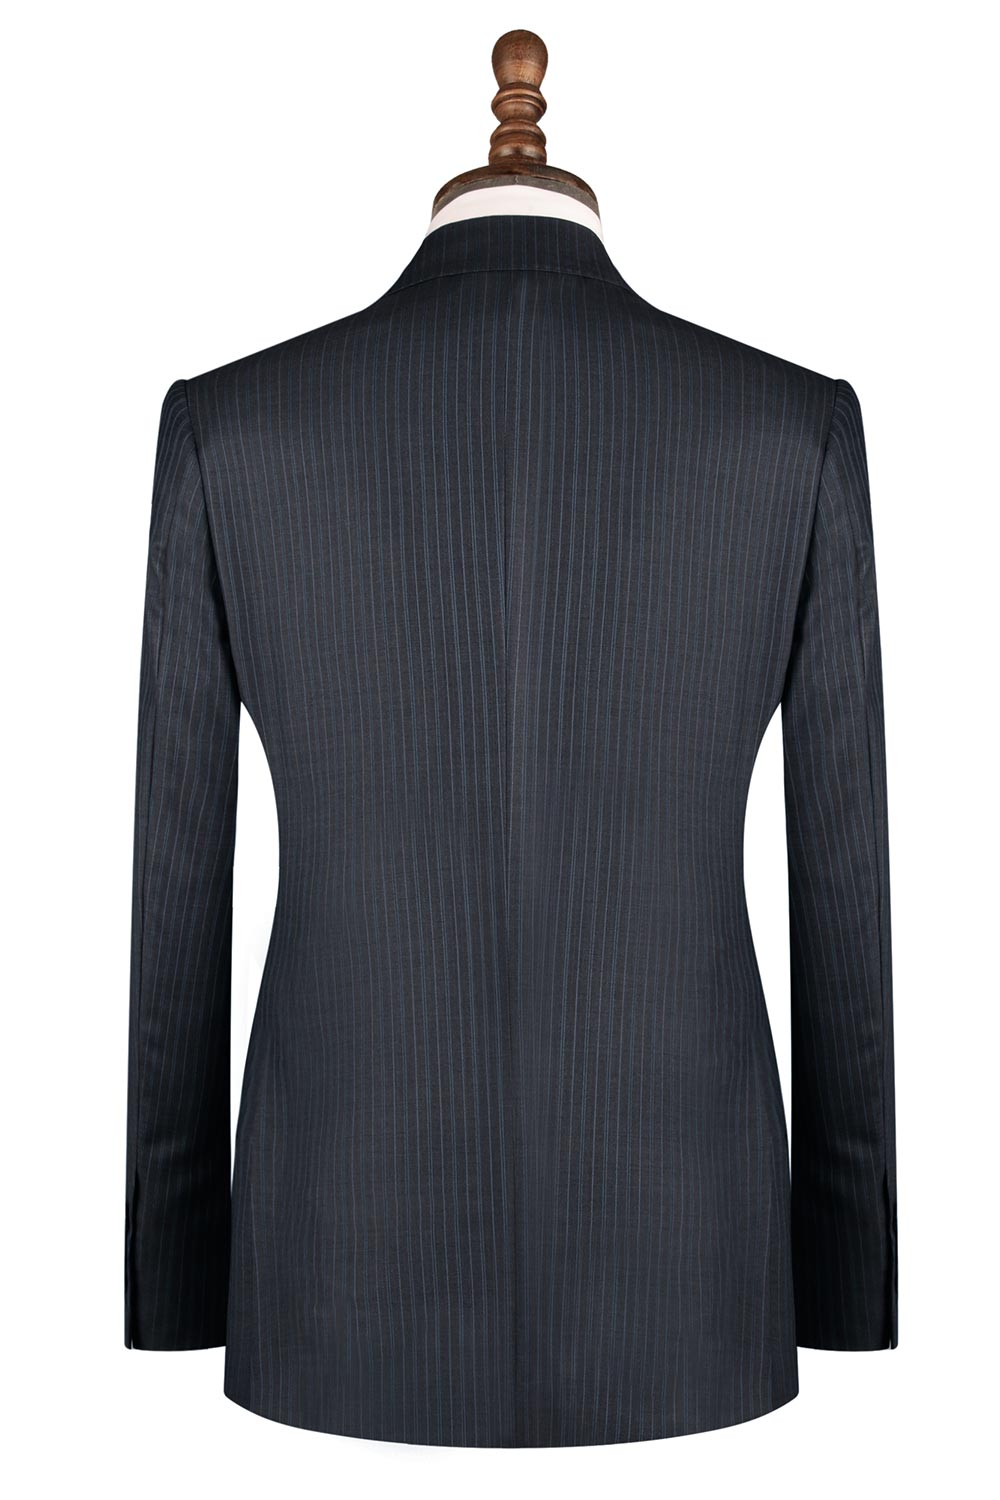 InStitchu Collection The Elgin mens suit